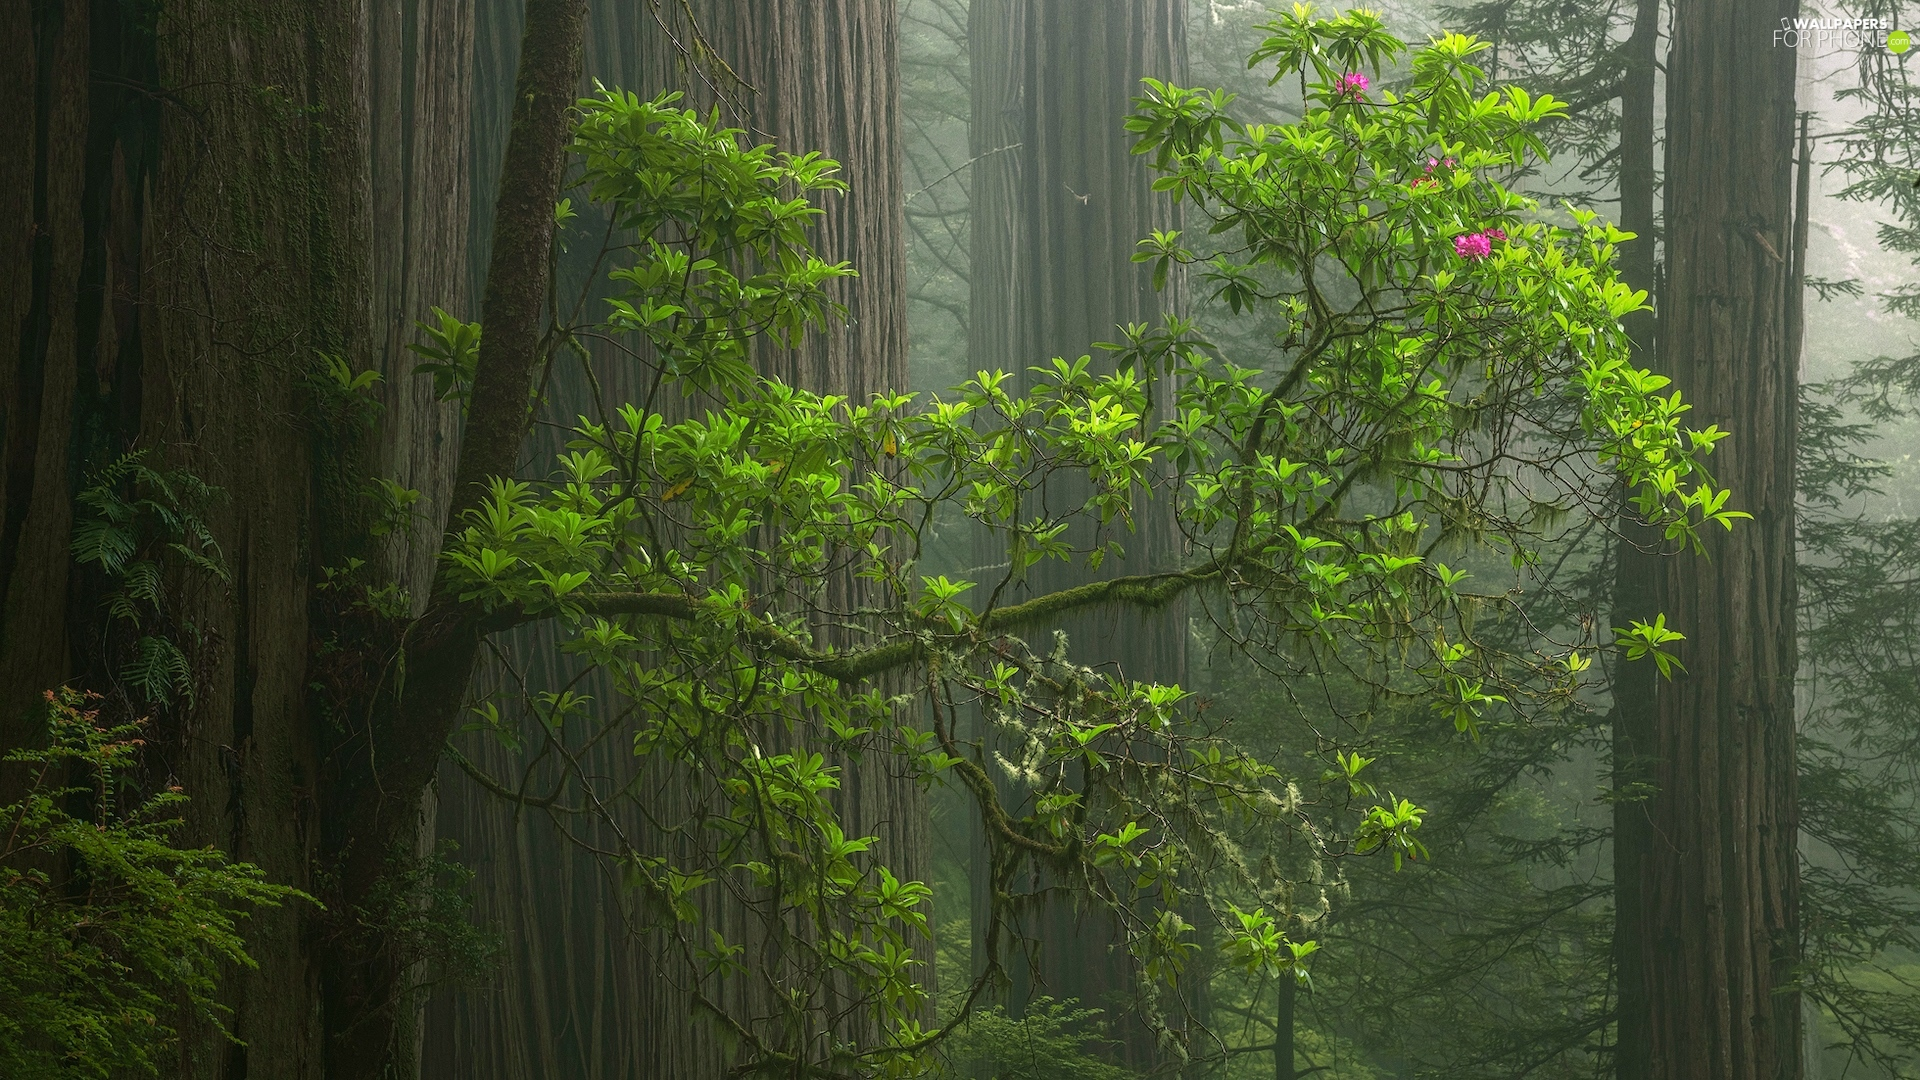 trees, forest, redwoods, rhododendron, viewes, Fog